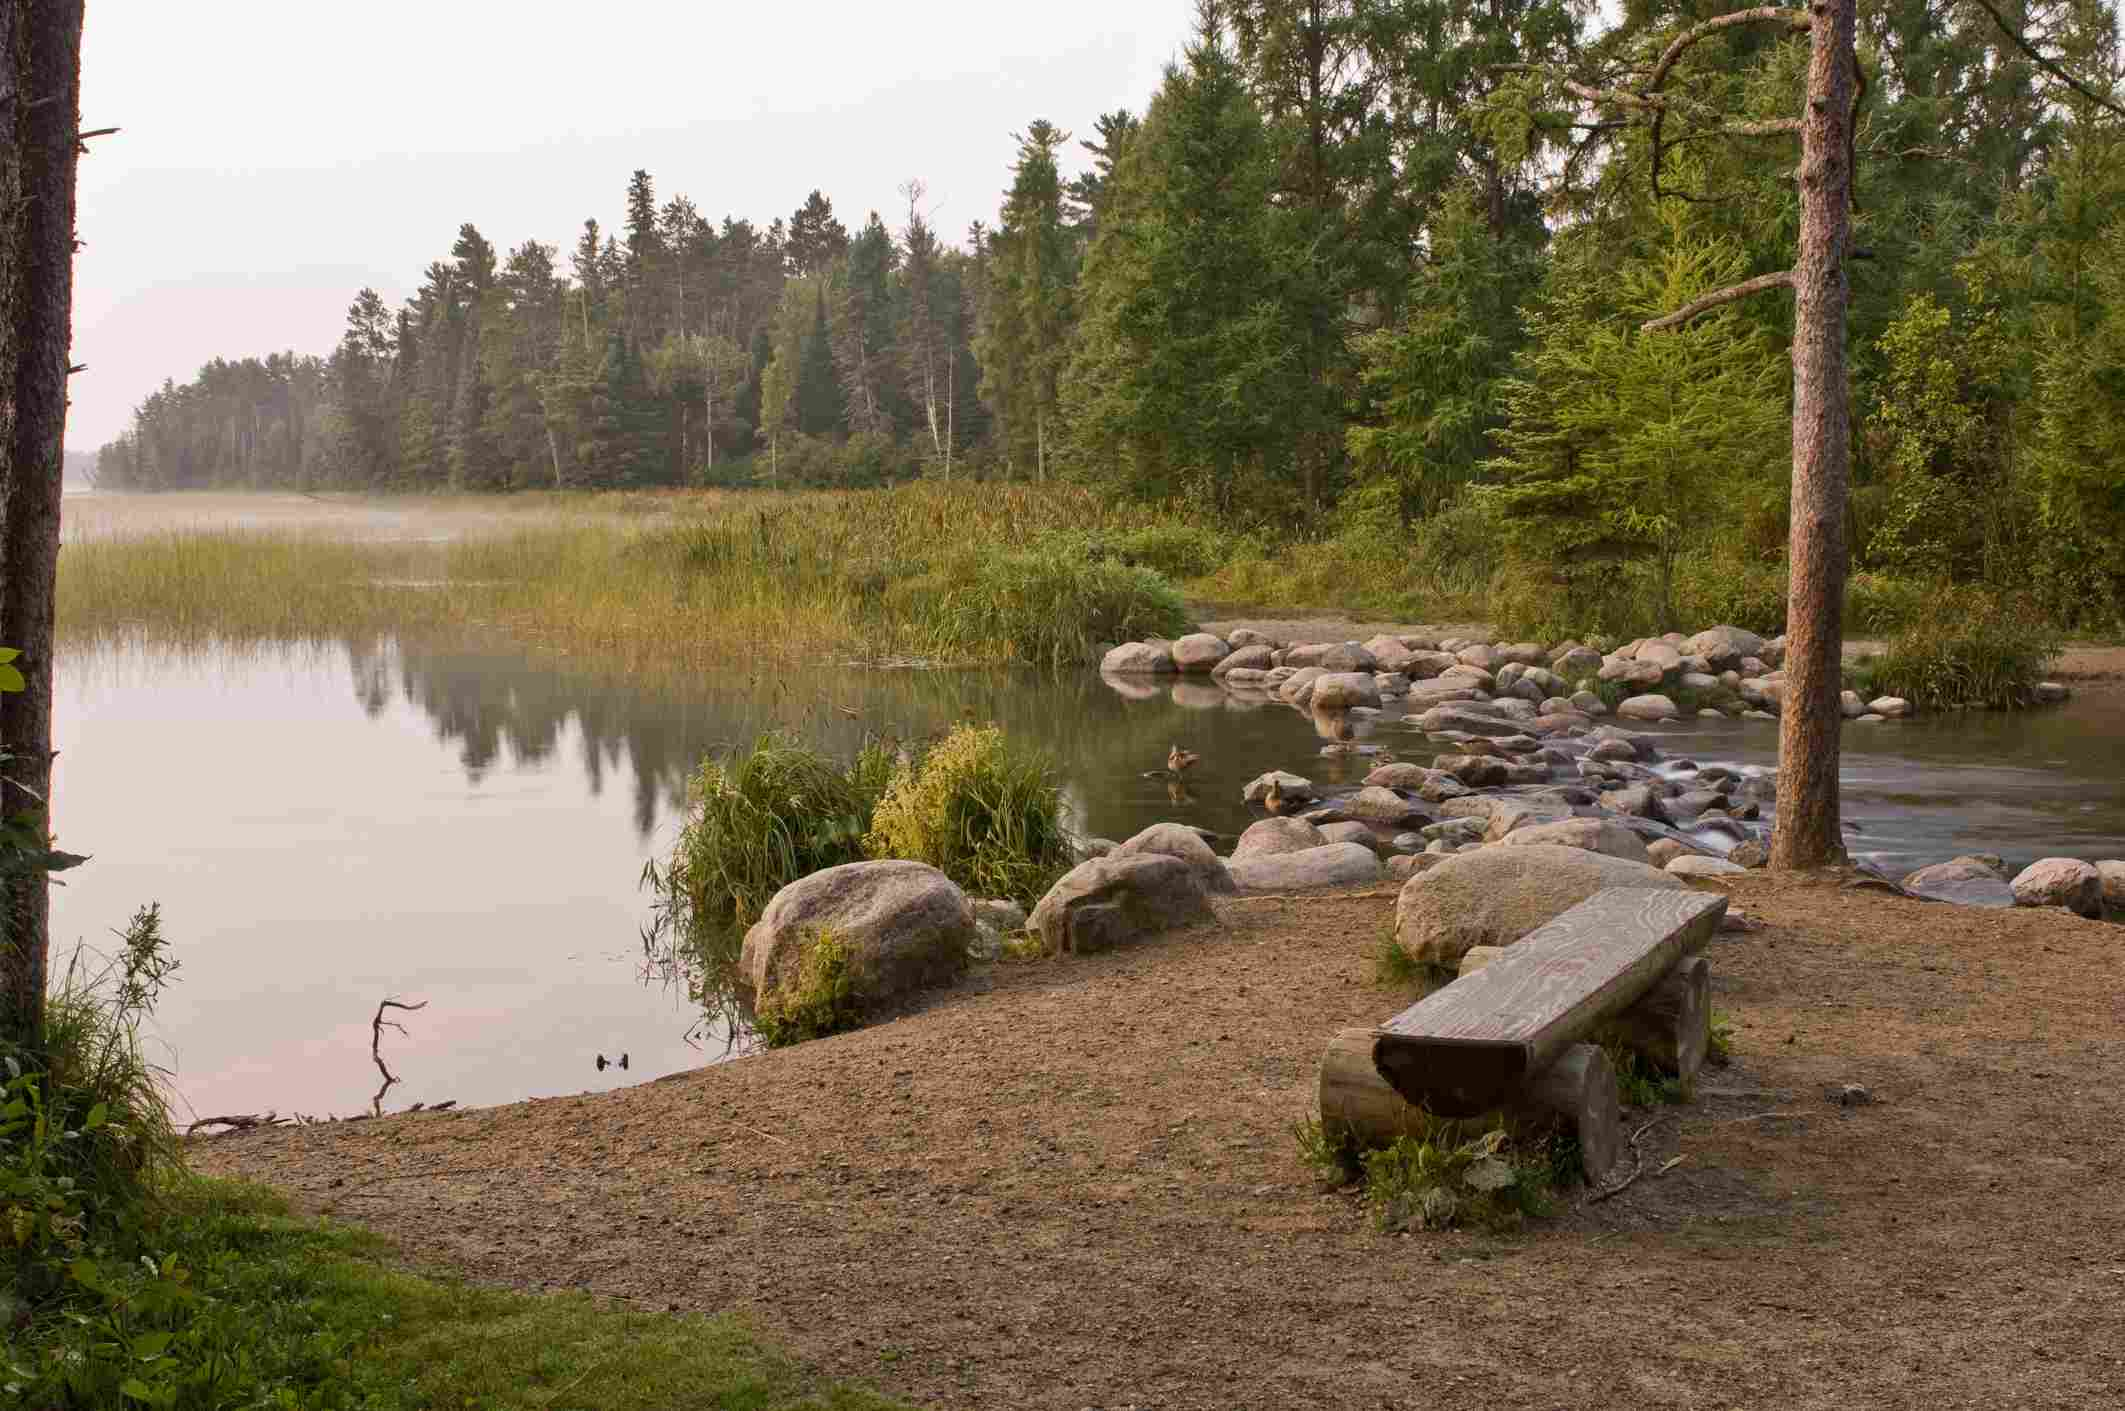 Mississippi Headwaters, Itasca State Park, Minnesota, USA